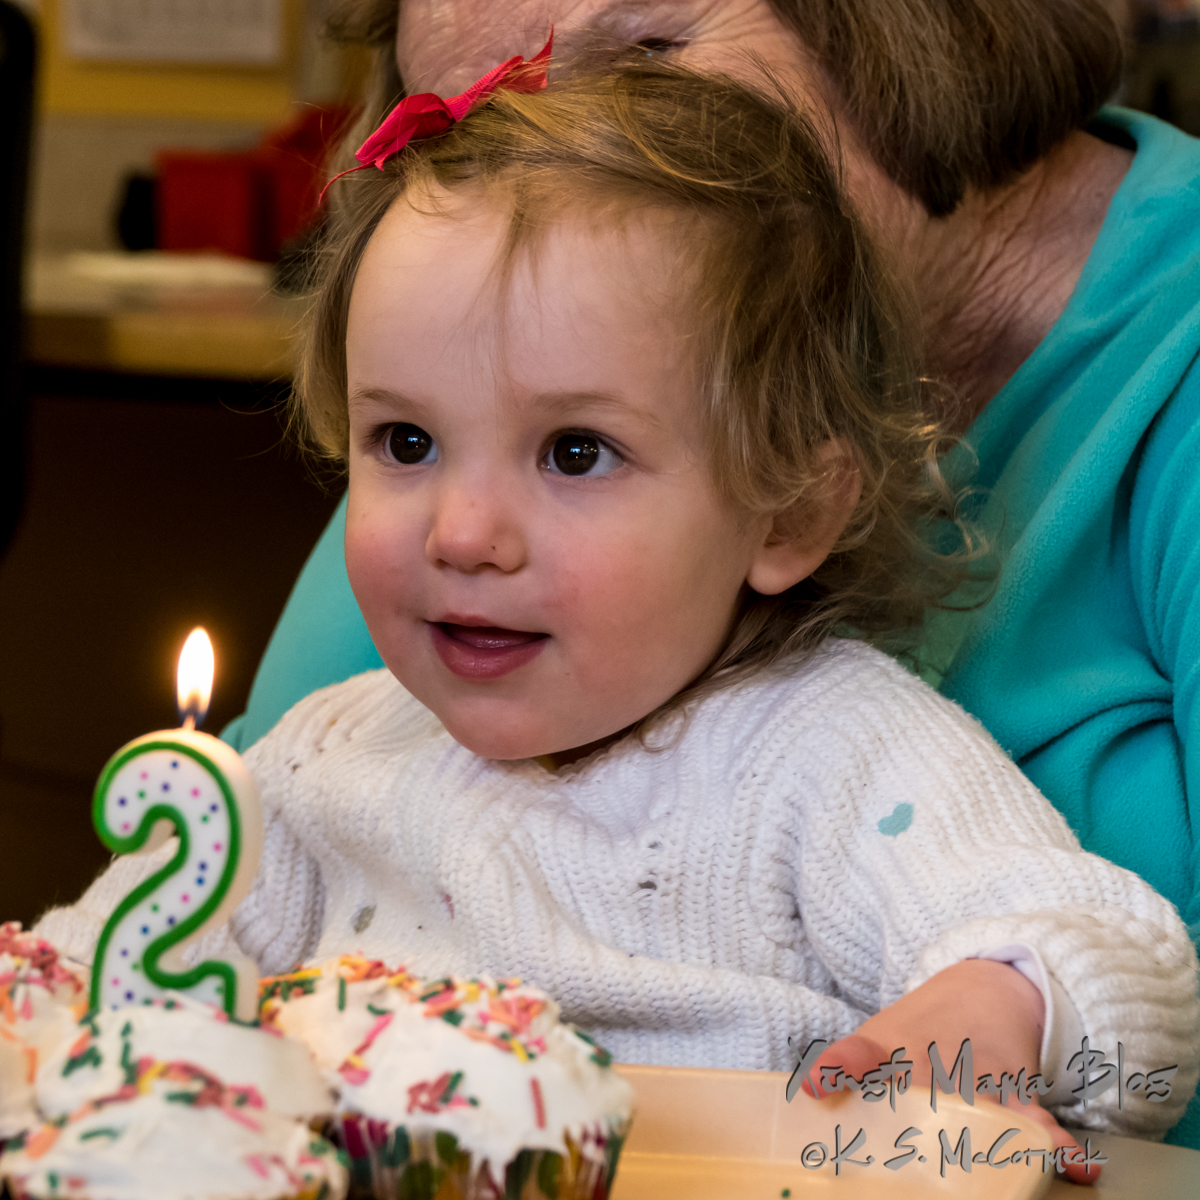 Toddler with birthday candle and cupcakes.